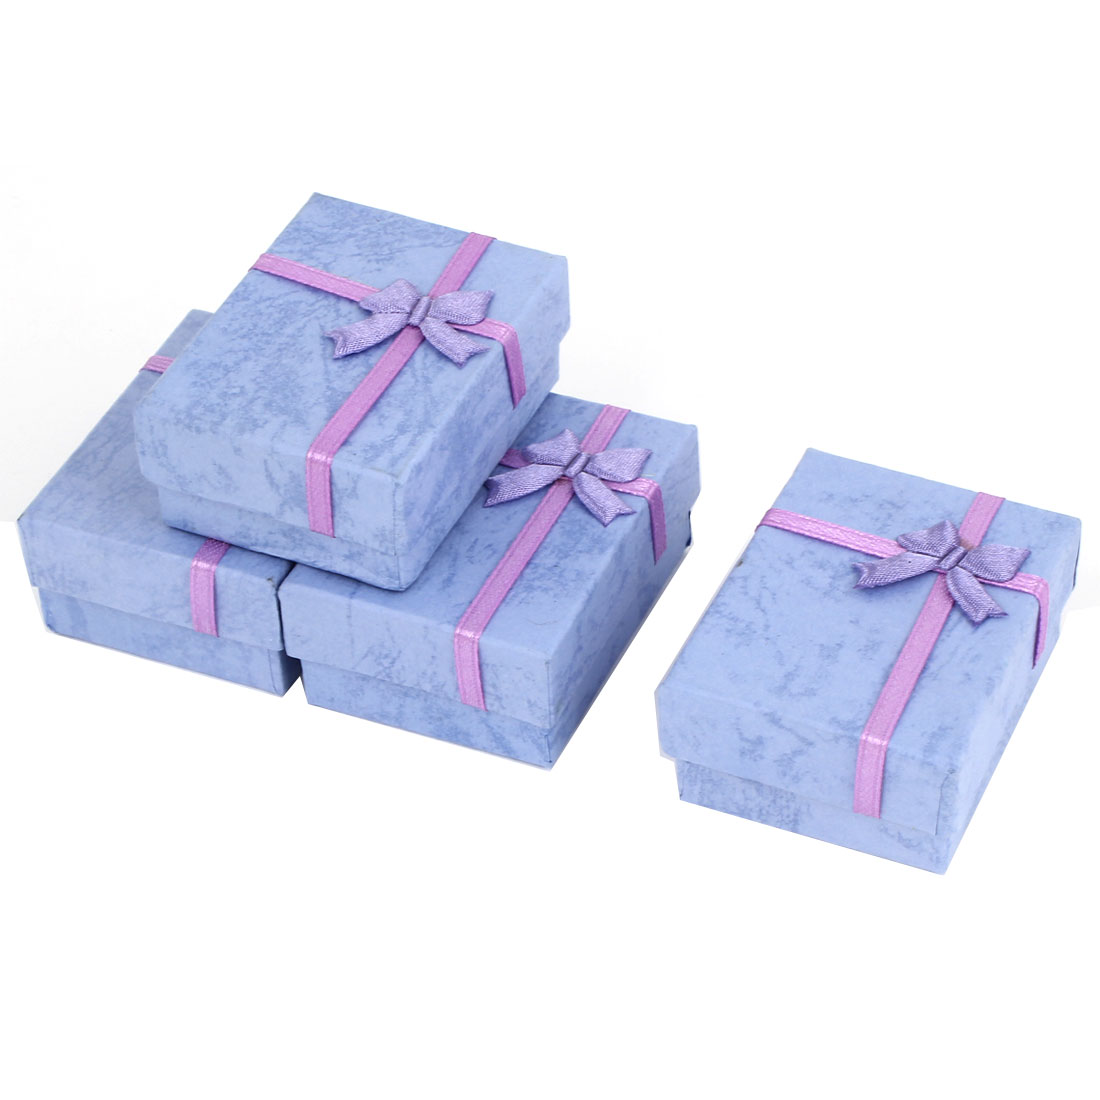 4 Pcs Purple Bowknot Accent Cardboard Square Present Container Case